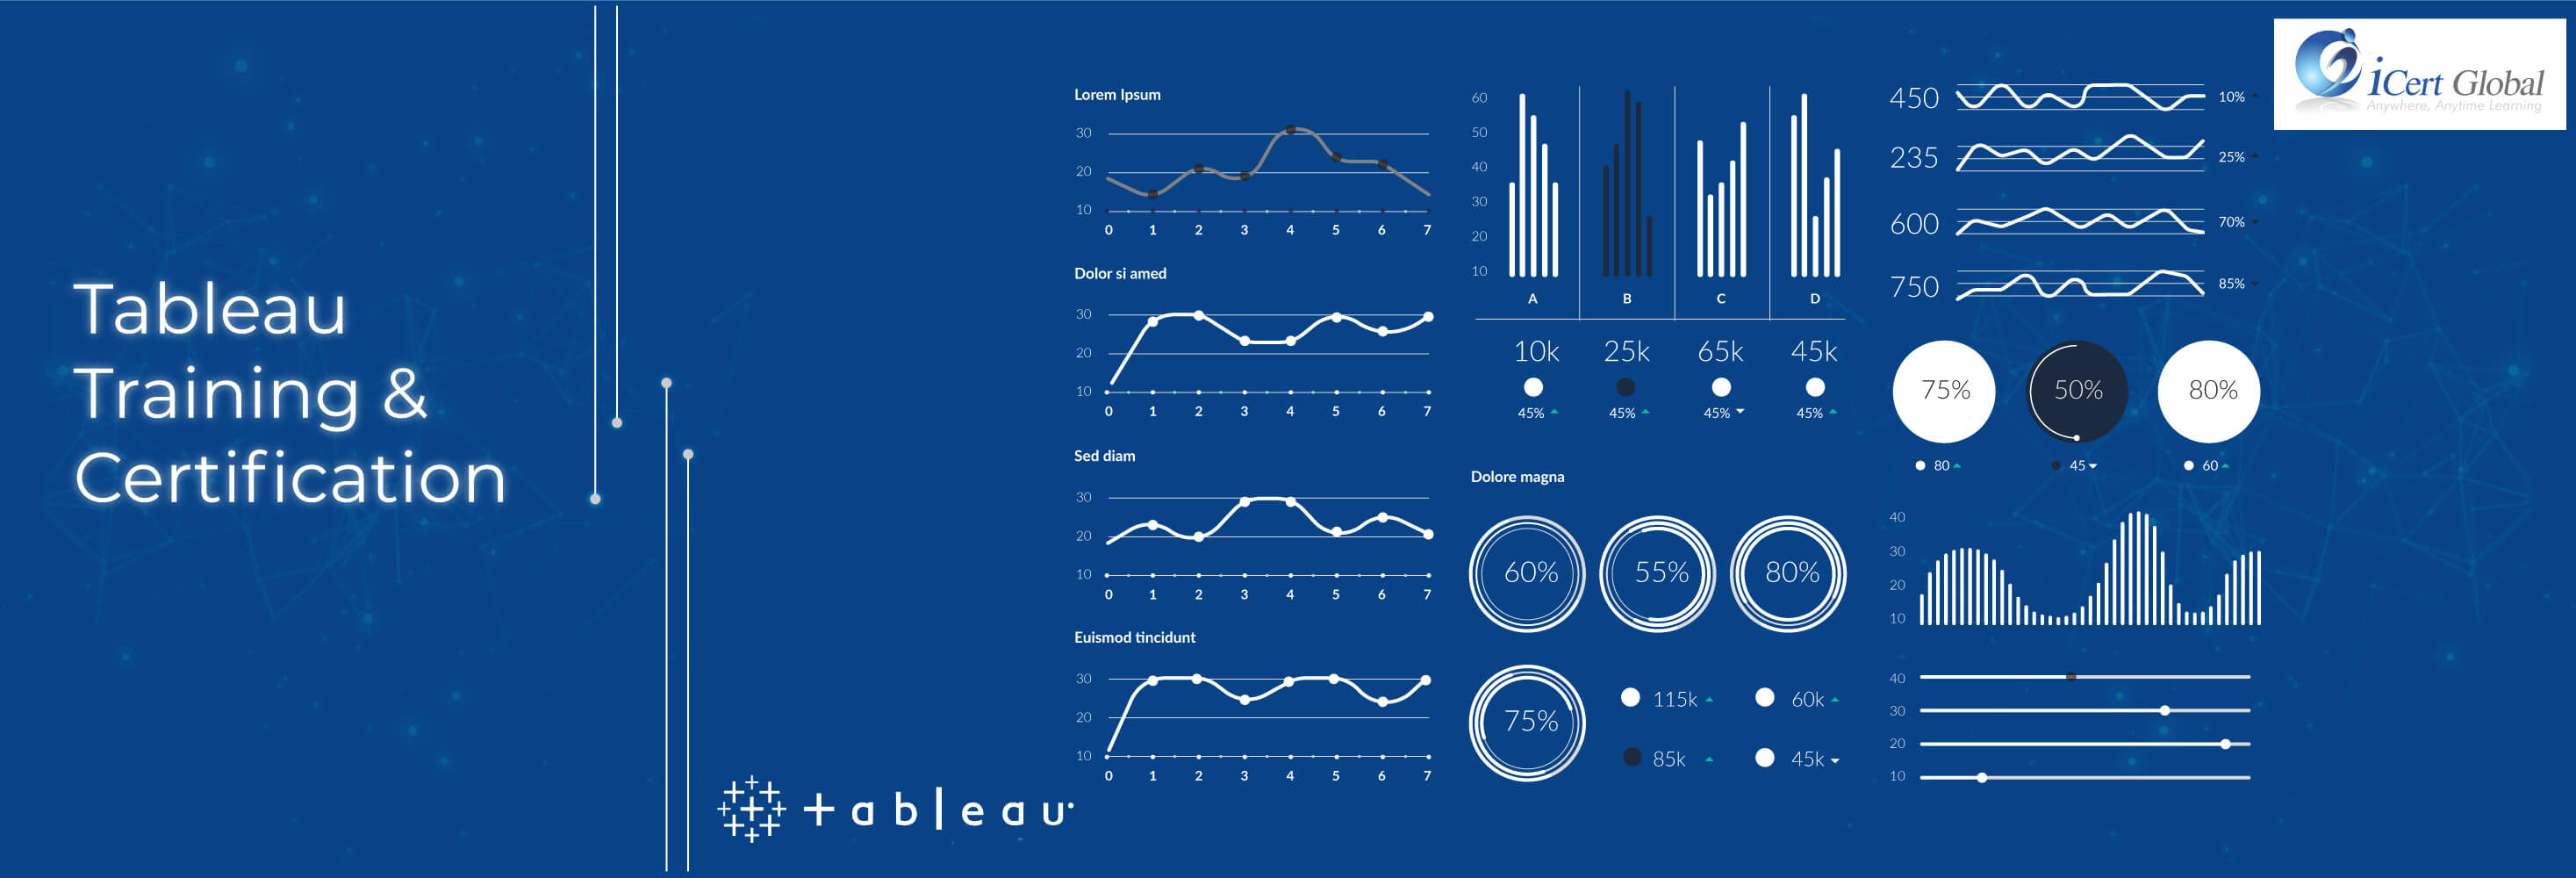 Tableau training and certification